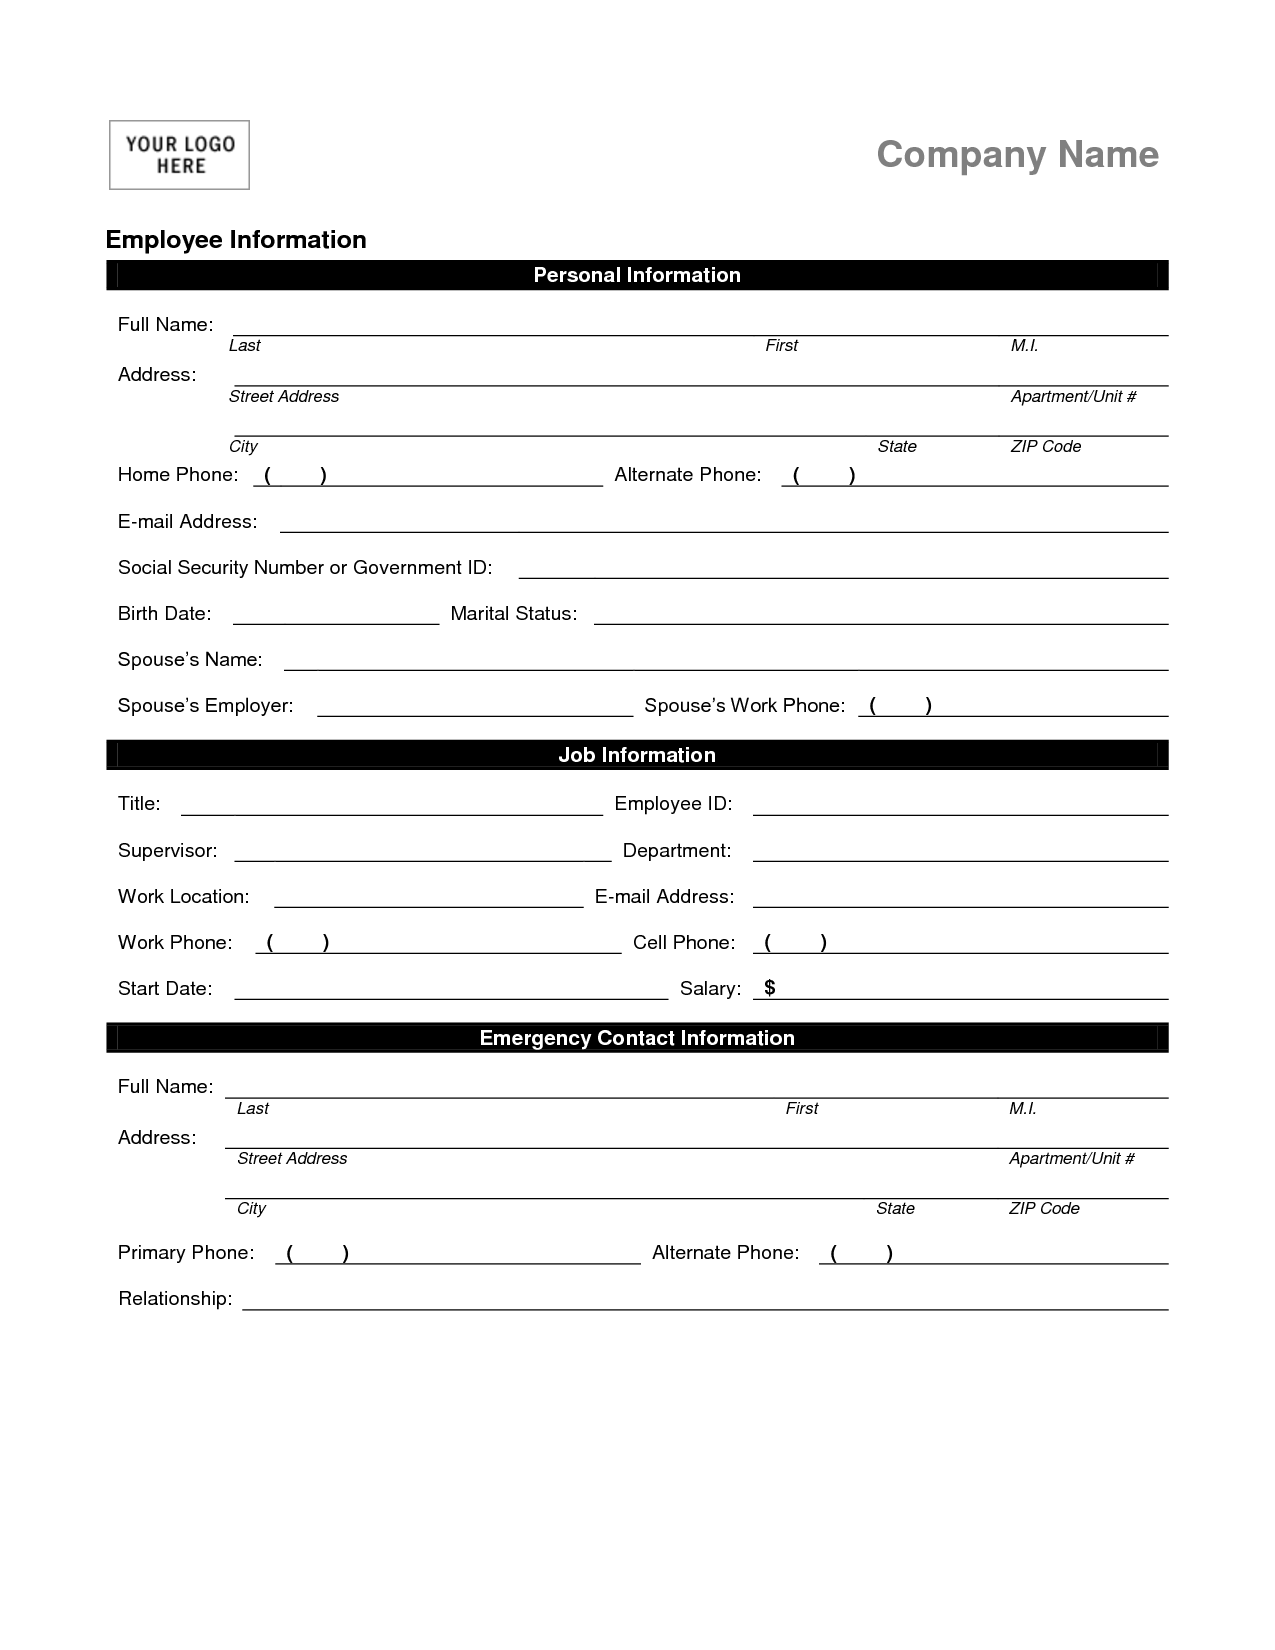 Employee personal information form template hardsell for Update contact information form template